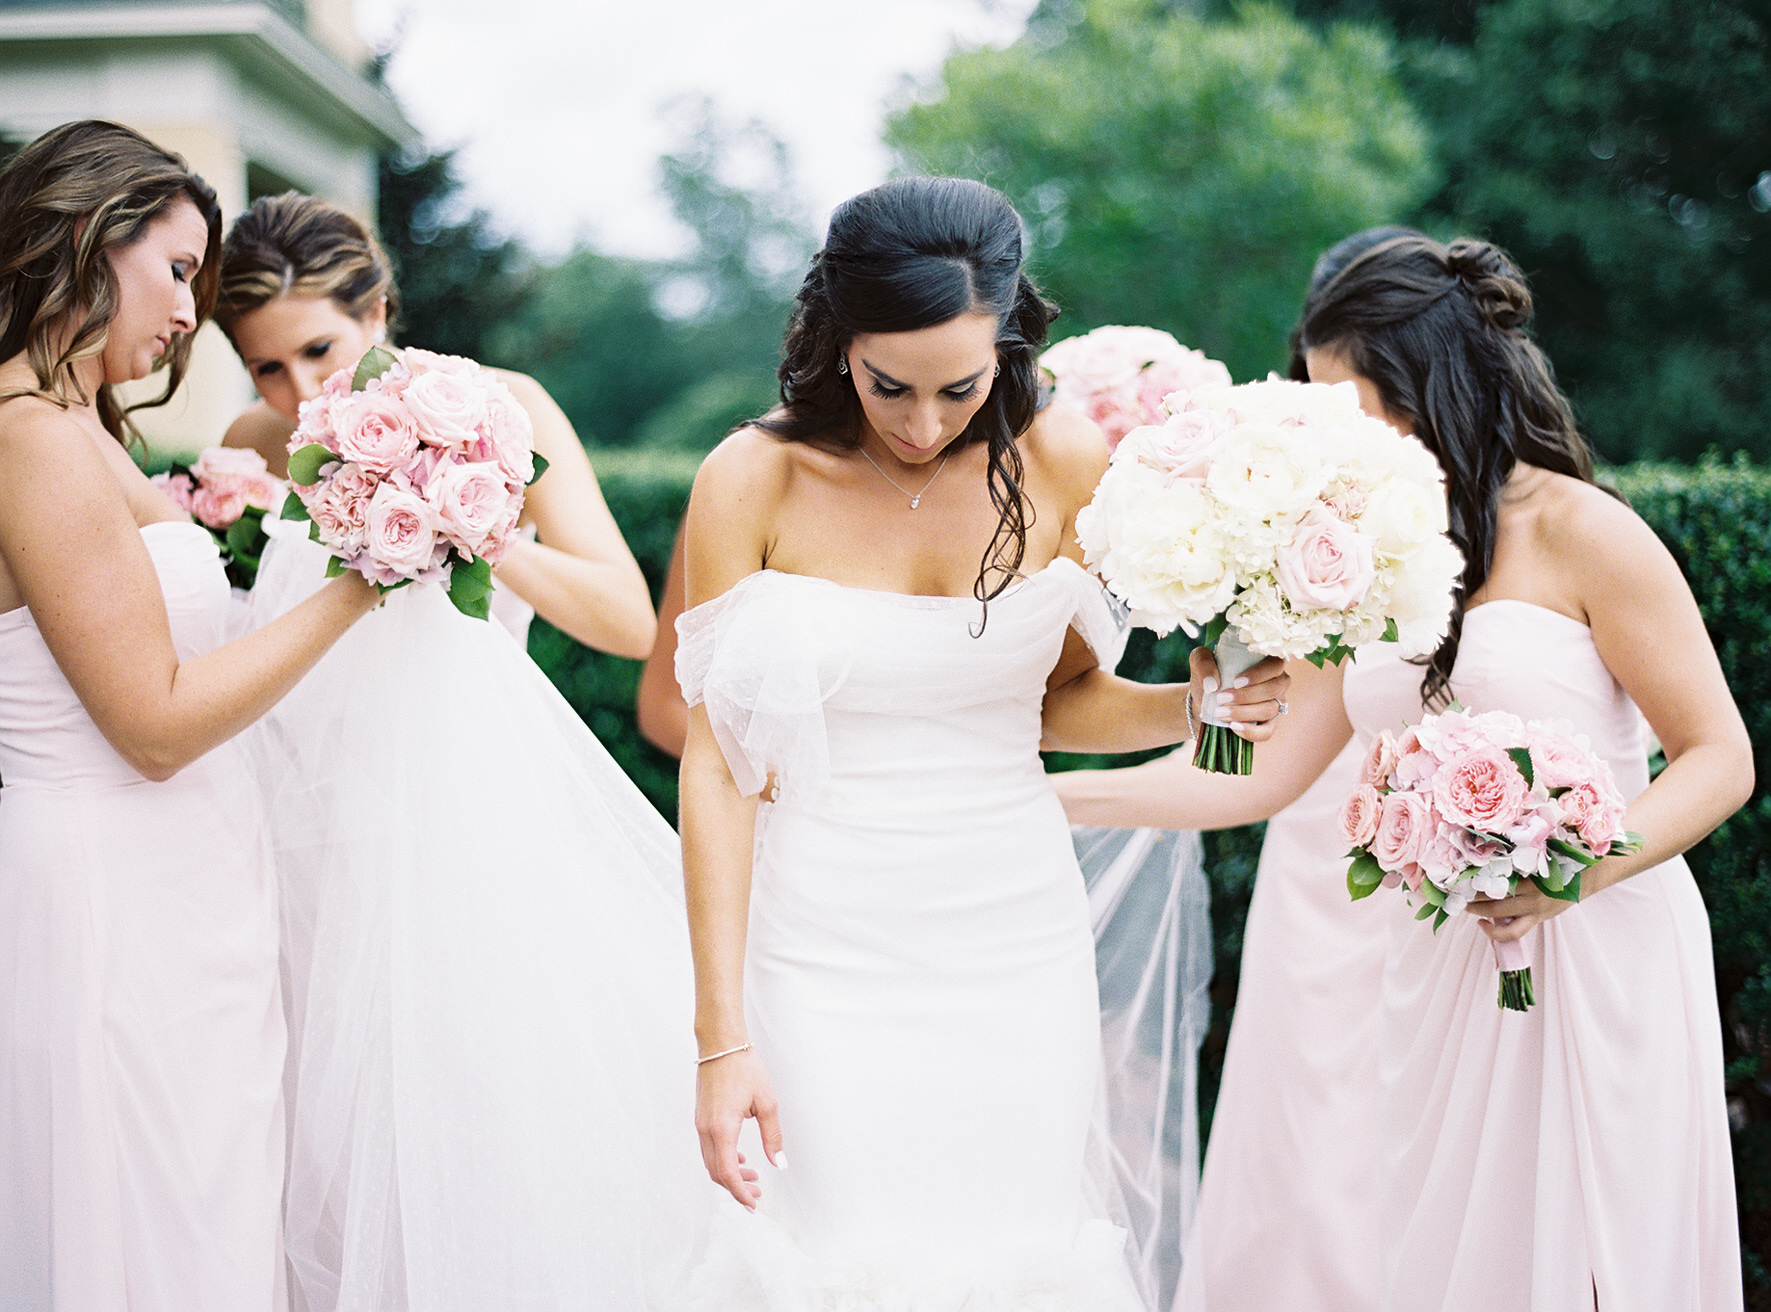 0196adam barnes photography keswick hall charlottesville virginia wedding.jpg